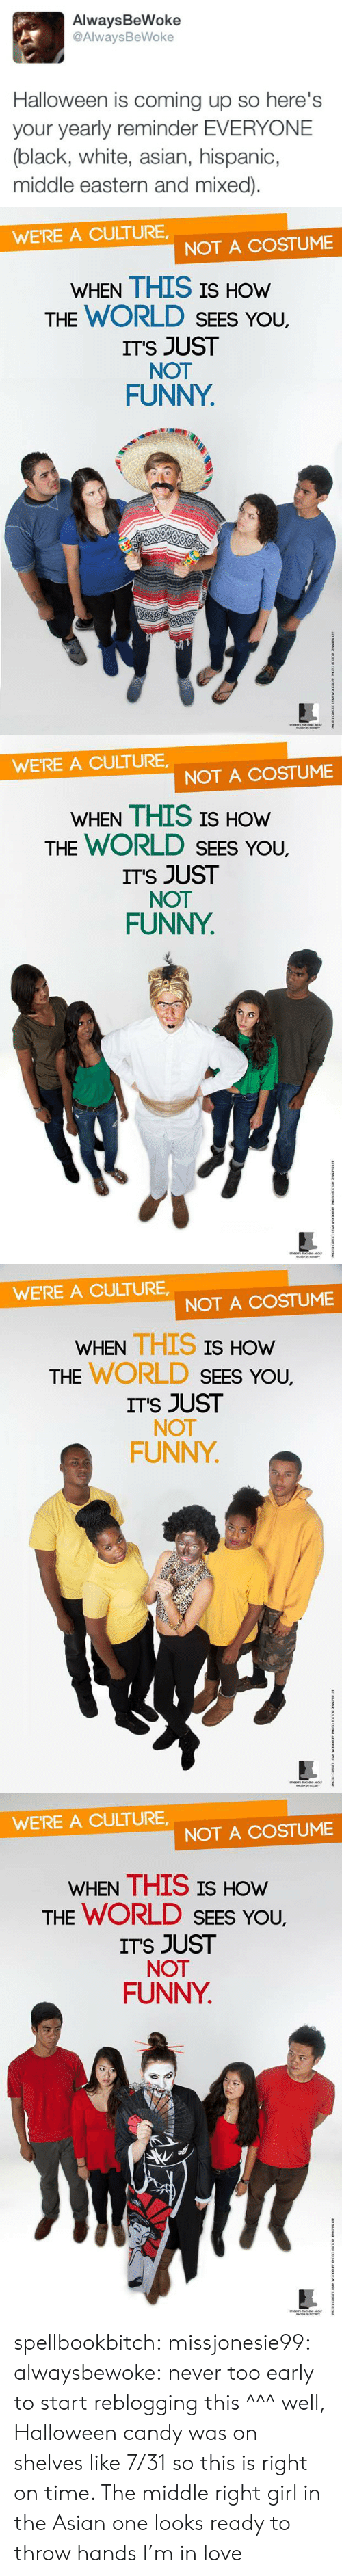 Mixed: AlwaysBeWoke  @AlwaysBeWoke  Halloween is coming up so here's  your yearly reminder EVERYONE  (black, white, asian, hispanic,  middle eastern and mixed)   WE'RE A CULTURE  NOT A COSTUME  WHEN THIS IS HOW  THE WORLD SEES YoU.  ITS JUST  NOT  FUNNY   WE'RE A CULTURE  NOT A COSTUME  WHEN THIS IS HOW  THE WORLD SEES YoU.  ITS JUST  NOT  FUNNY   WE'RE A CULTURE,  NOT A COSTUME  WHEN THIS IS  HOW  THE WORLD SEEs You,  ITS JUST  NOT  FUNNY   WE'RE A CULTURE  NOT A COSTUME  WHEN THIS IS HOw  THE WORLD SEES You,  ITS JUST  NOT  FUNNY spellbookbitch:  missjonesie99:  alwaysbewoke:  never too early to start reblogging this  ^^^ well, Halloween candy was on shelves like 7/31 so this is right on time.    The middle right girl in the Asian one looks ready to throw hands I'm in love